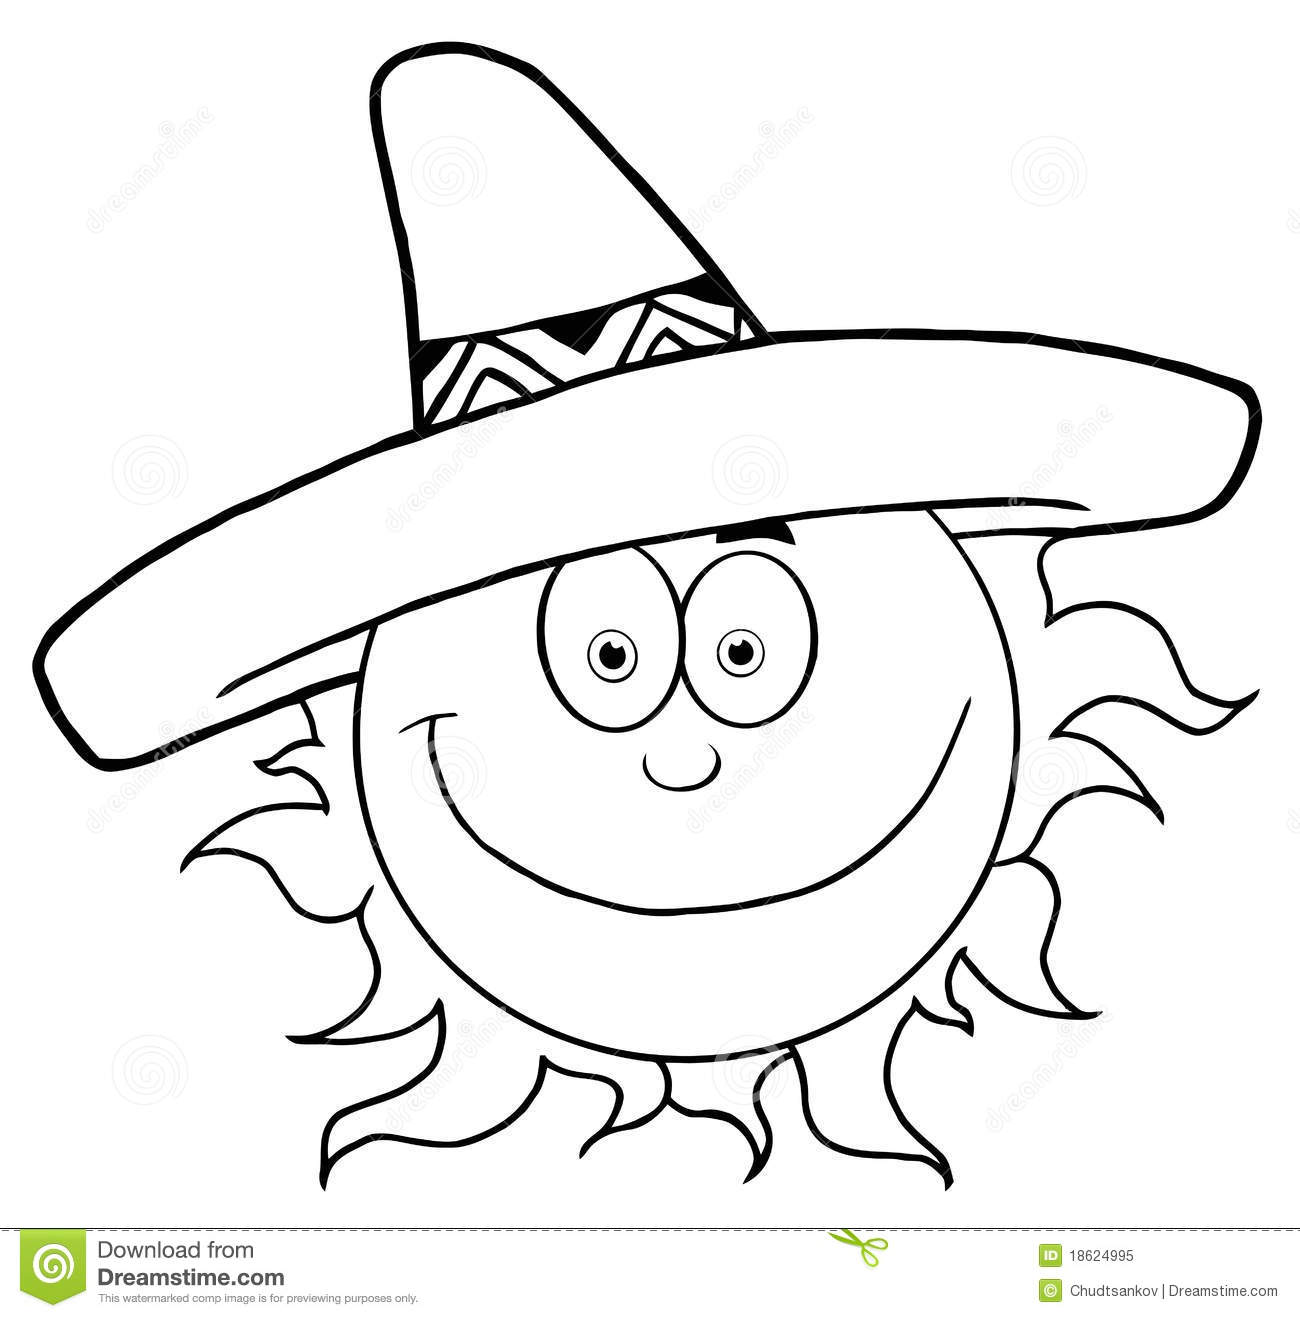 a599fca008e Outlined Smiling Sun With Sombrero Hat Stock Vector - Illustration ...